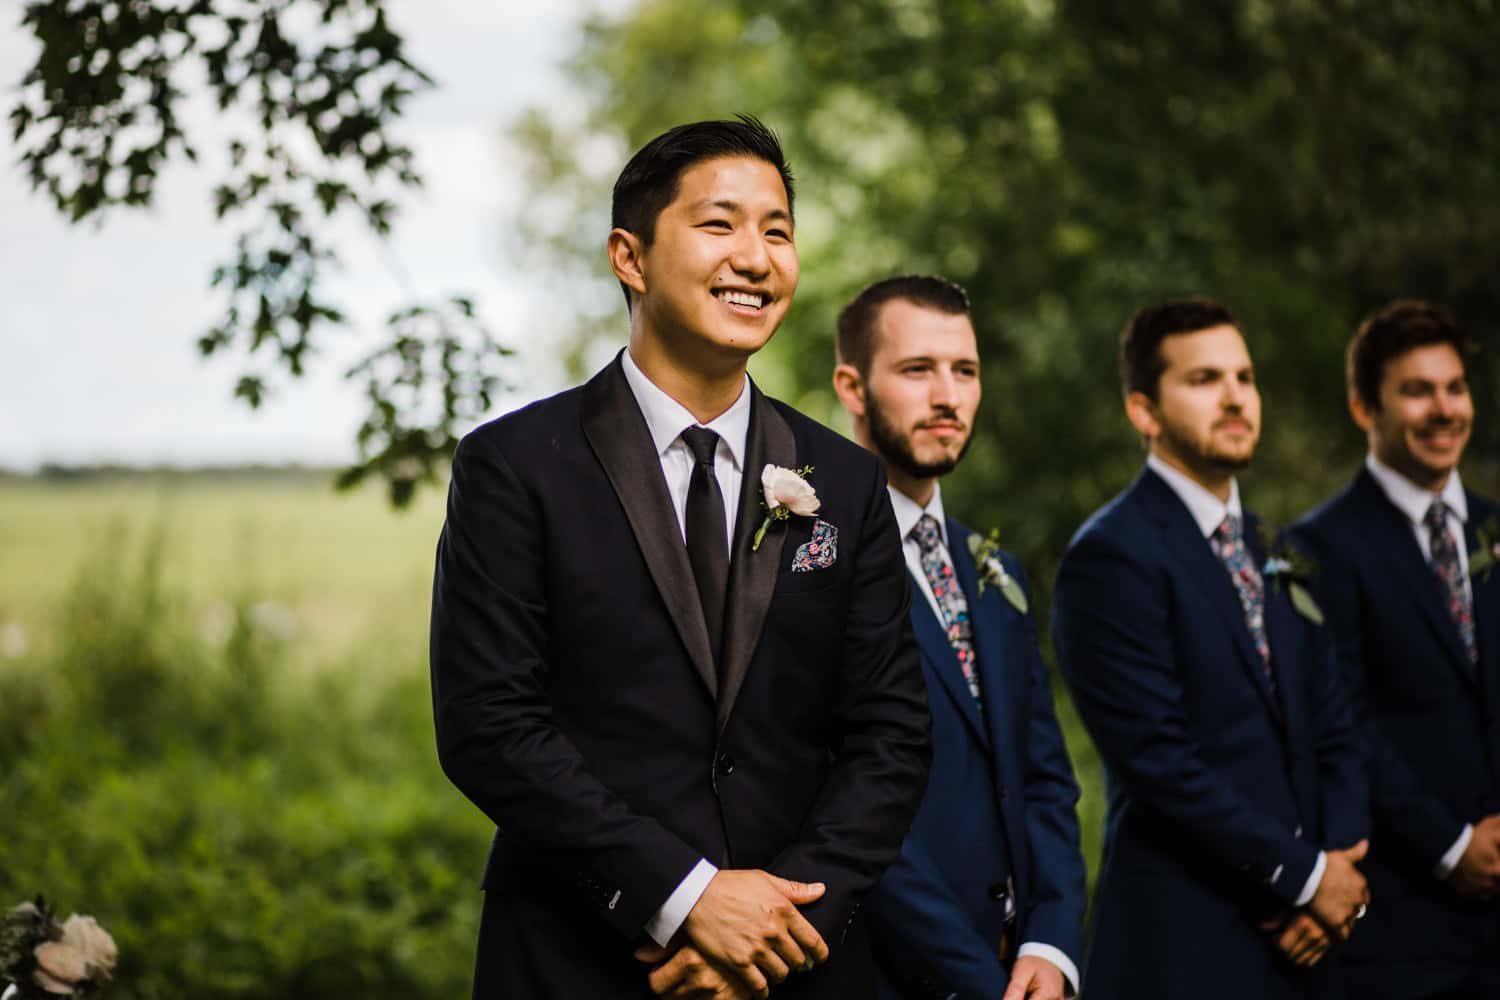 groom sees his bride walking down the aisle - carley teresa photography - backyard wedding